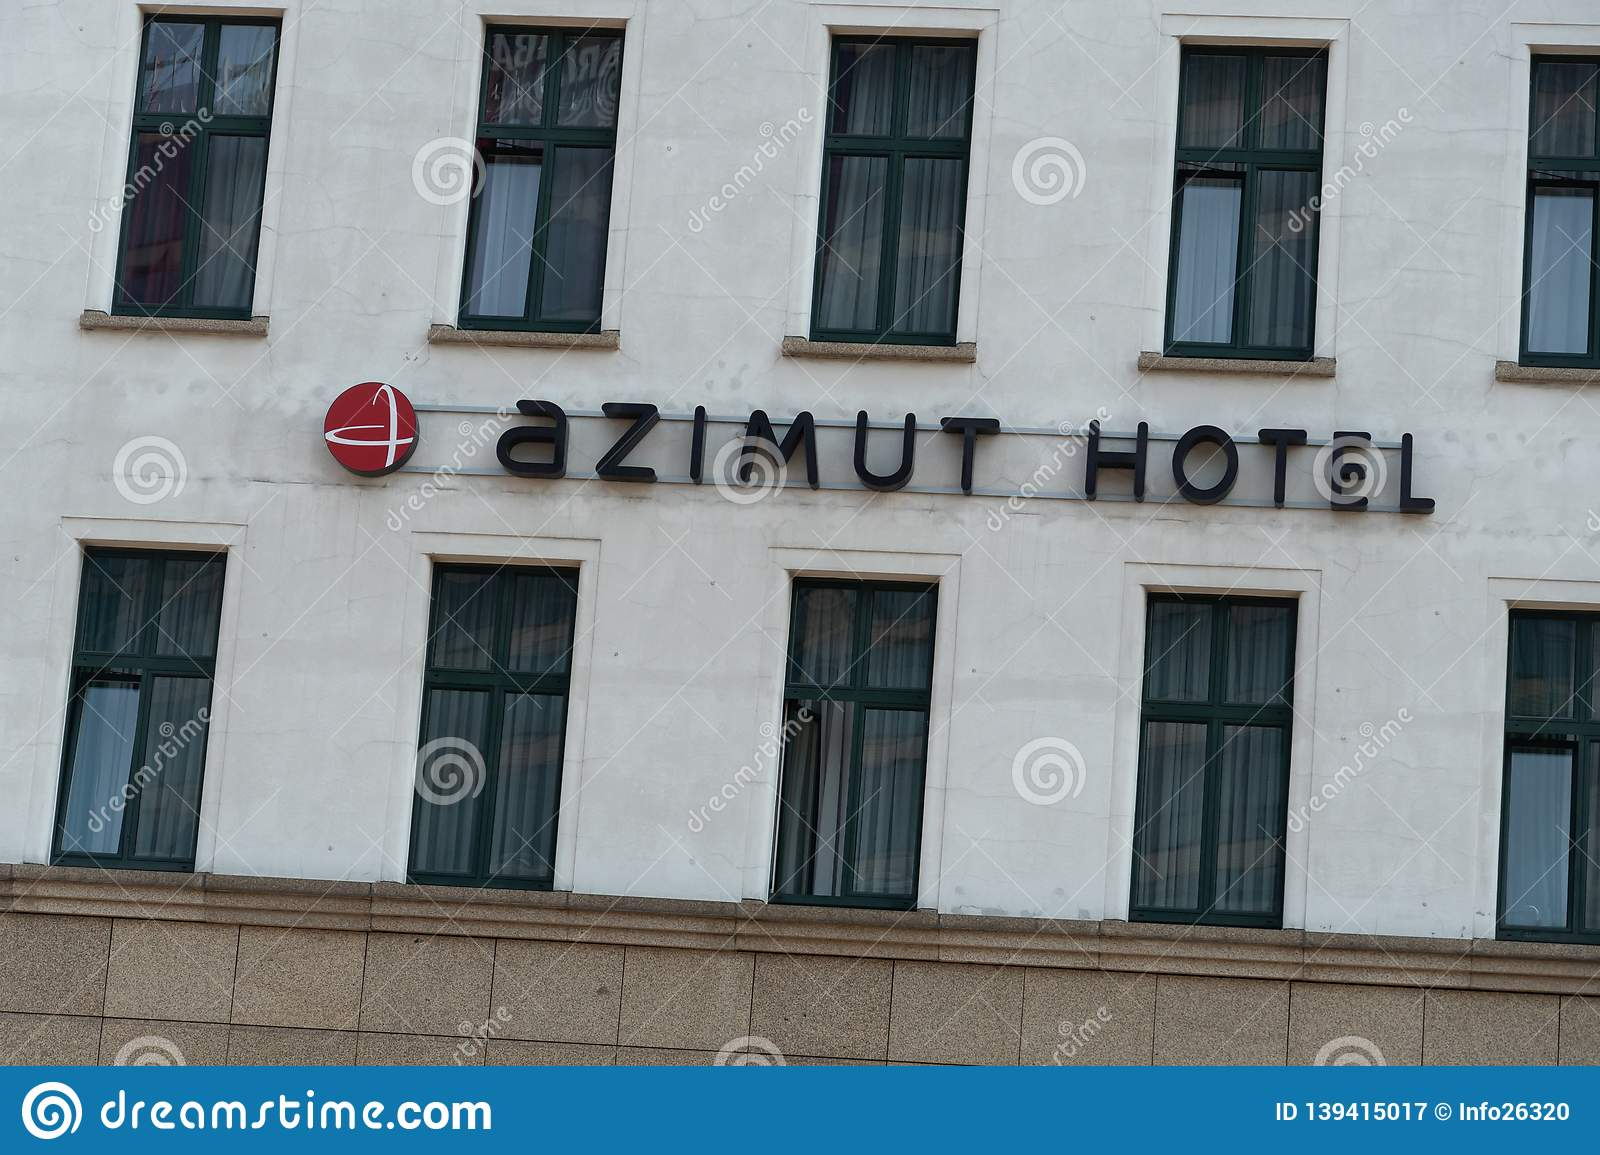 Azimut Hotel Kurfuerstendamm Berlin Editorial Photography Image Of